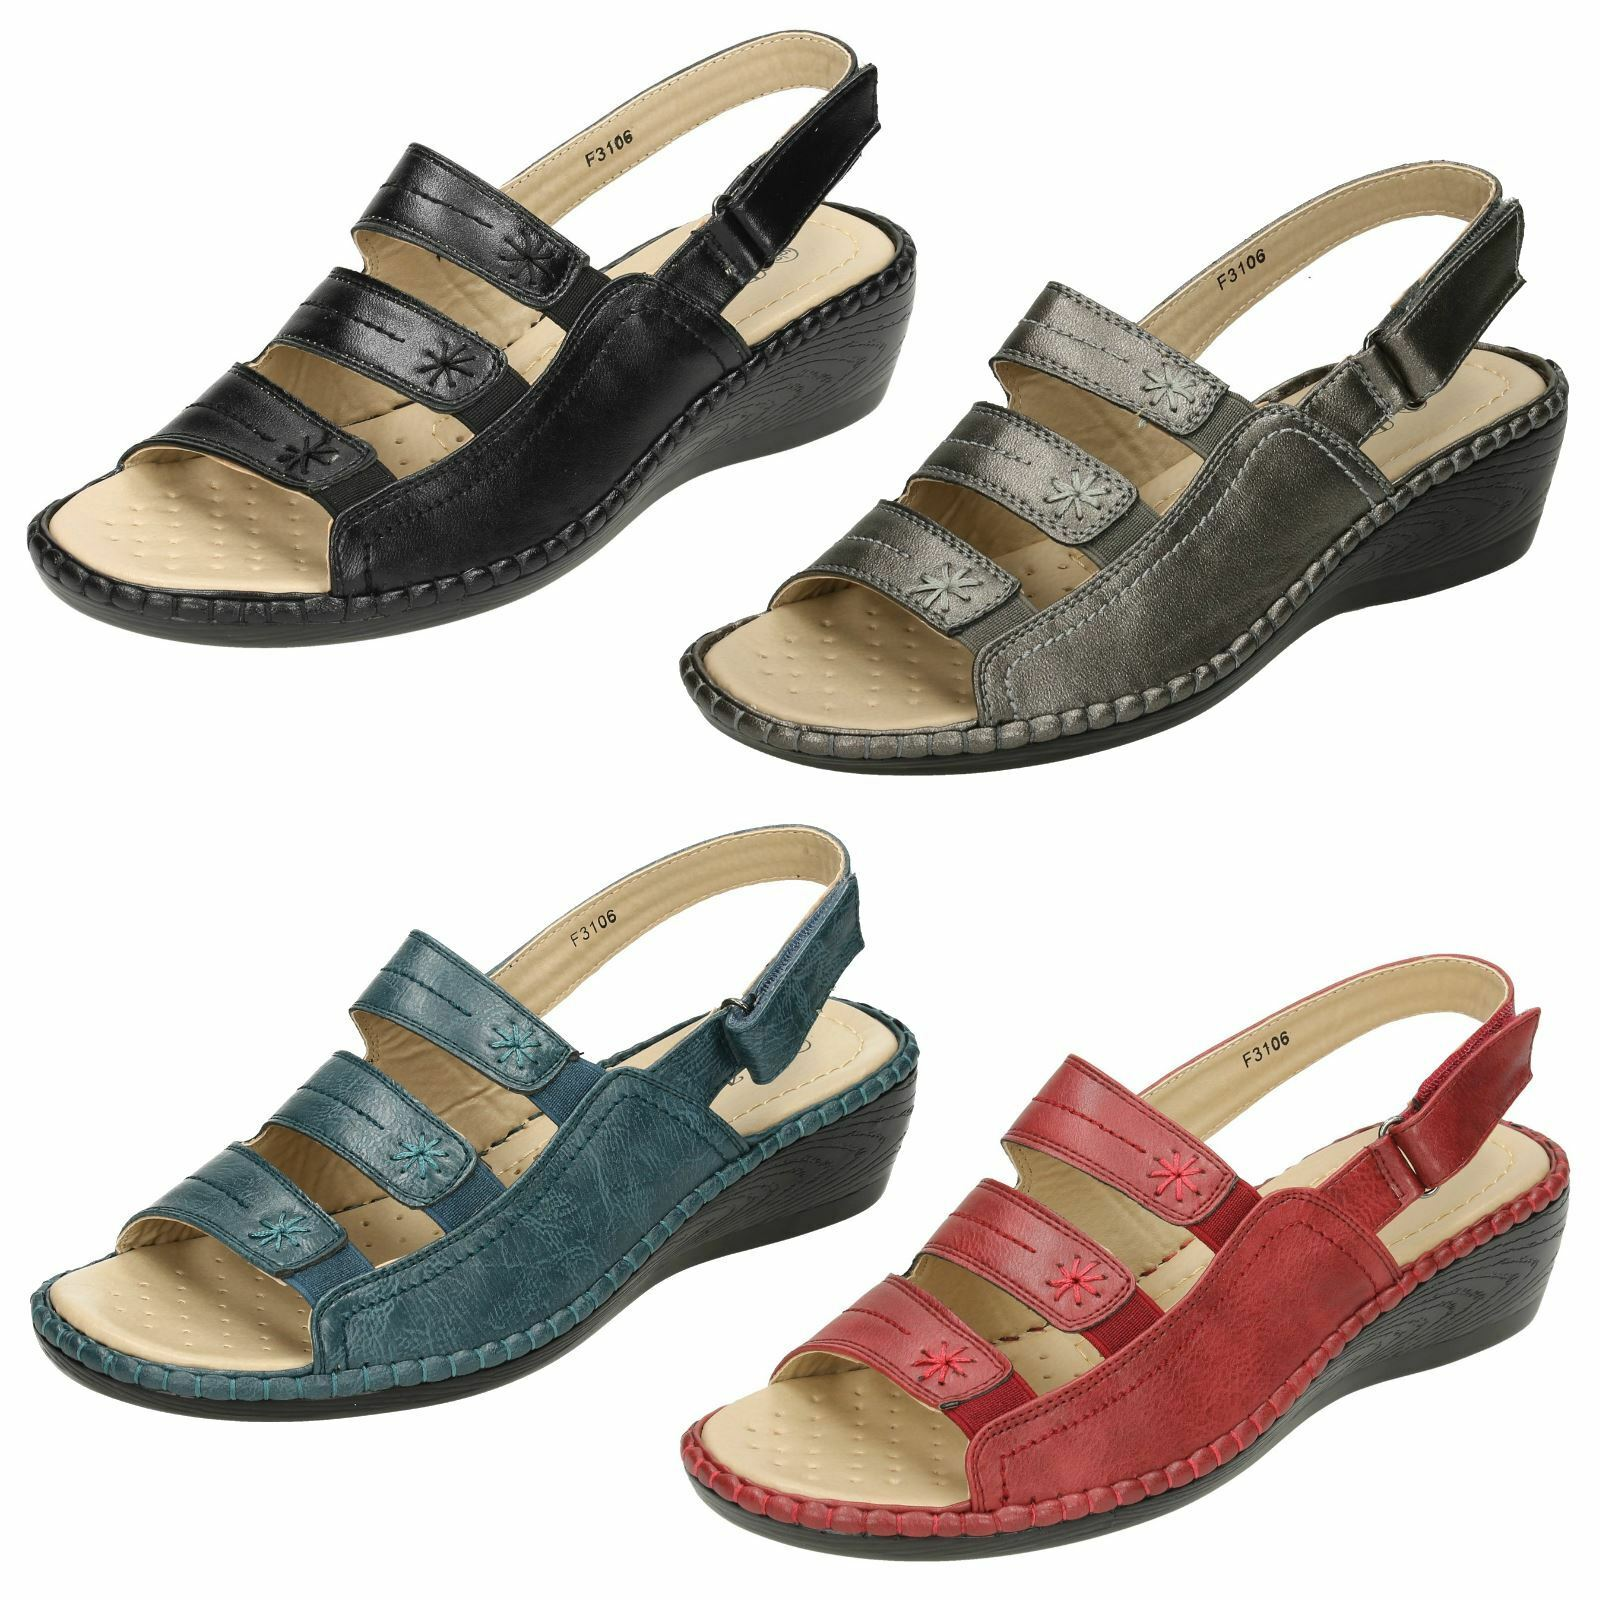 Ladies Eaze Comfort Wedge Toe Sandals With Open Toe Wedge Front b9a351